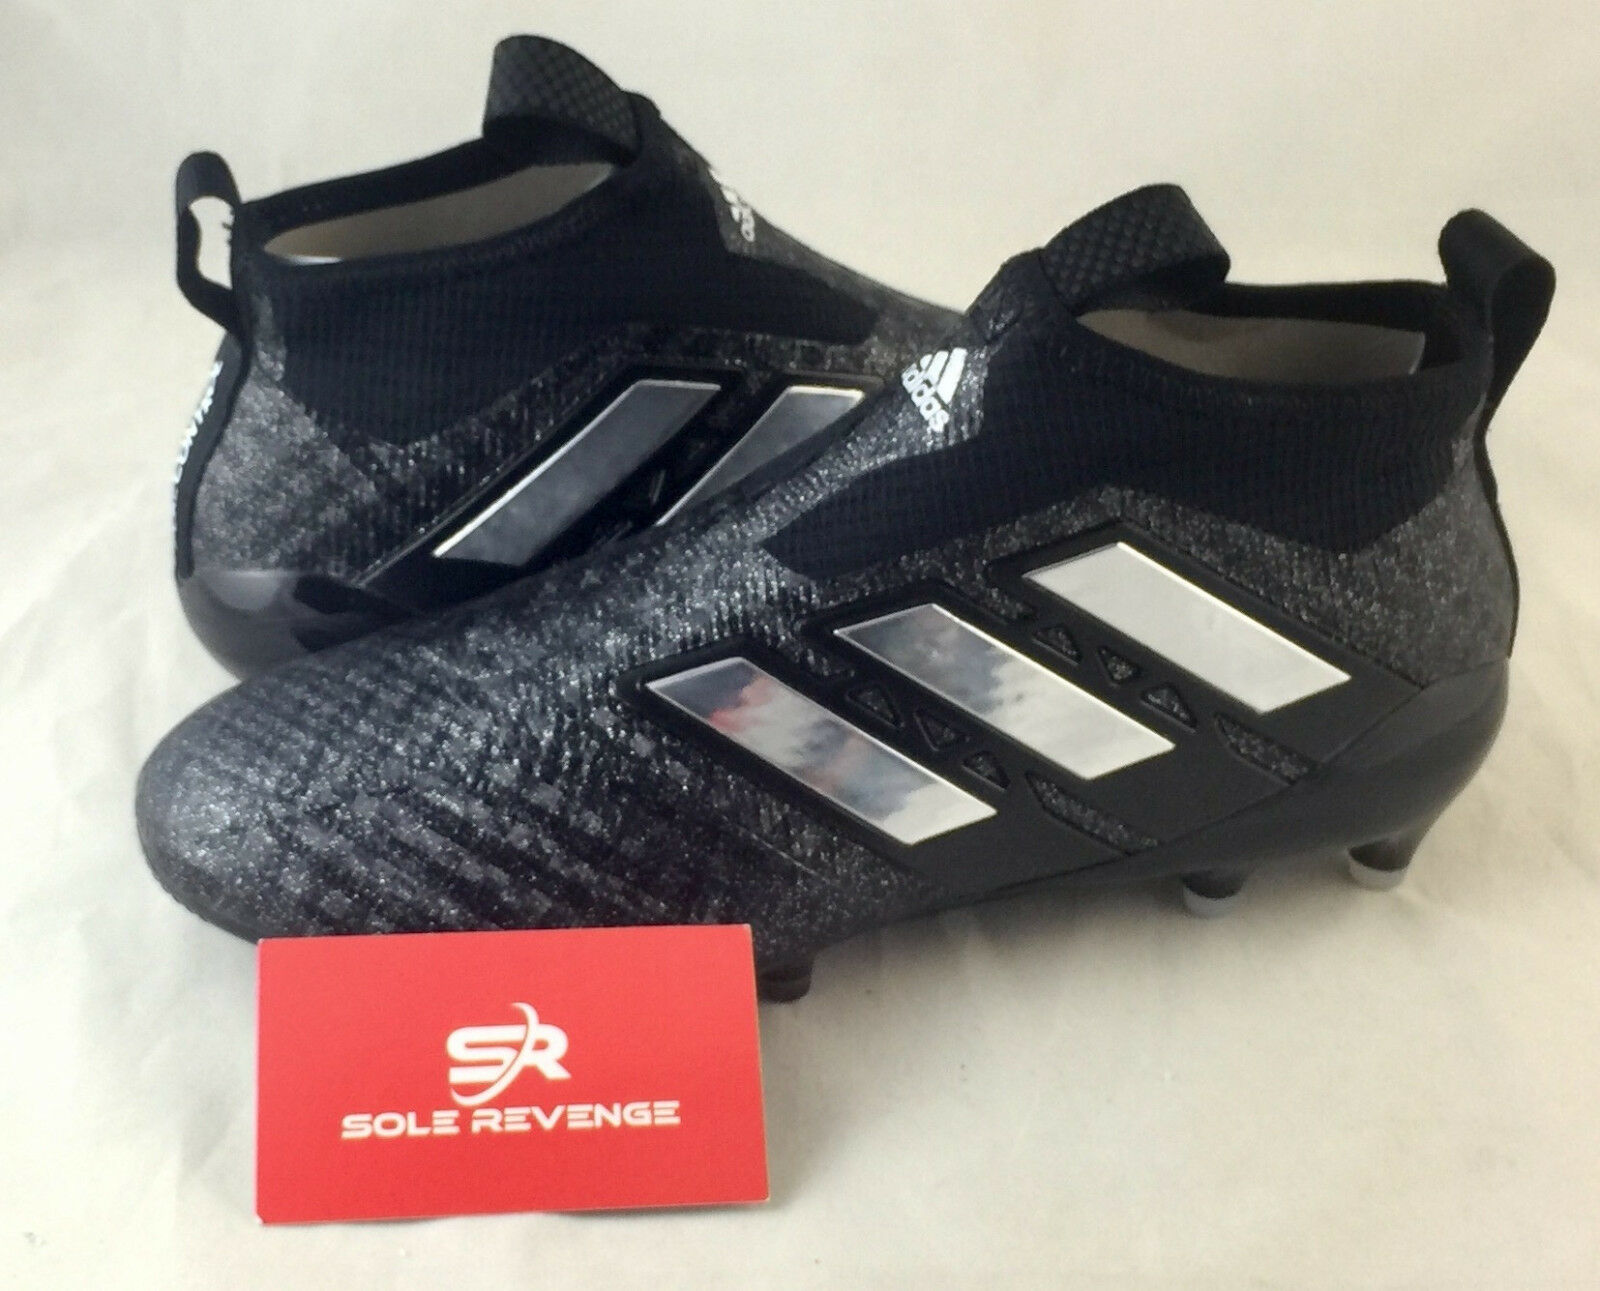 8 purecontrol adidas hommes soccer ace 17 purecontrol 8 chaussures noires bb4310 terre ferme crampons 1e2768